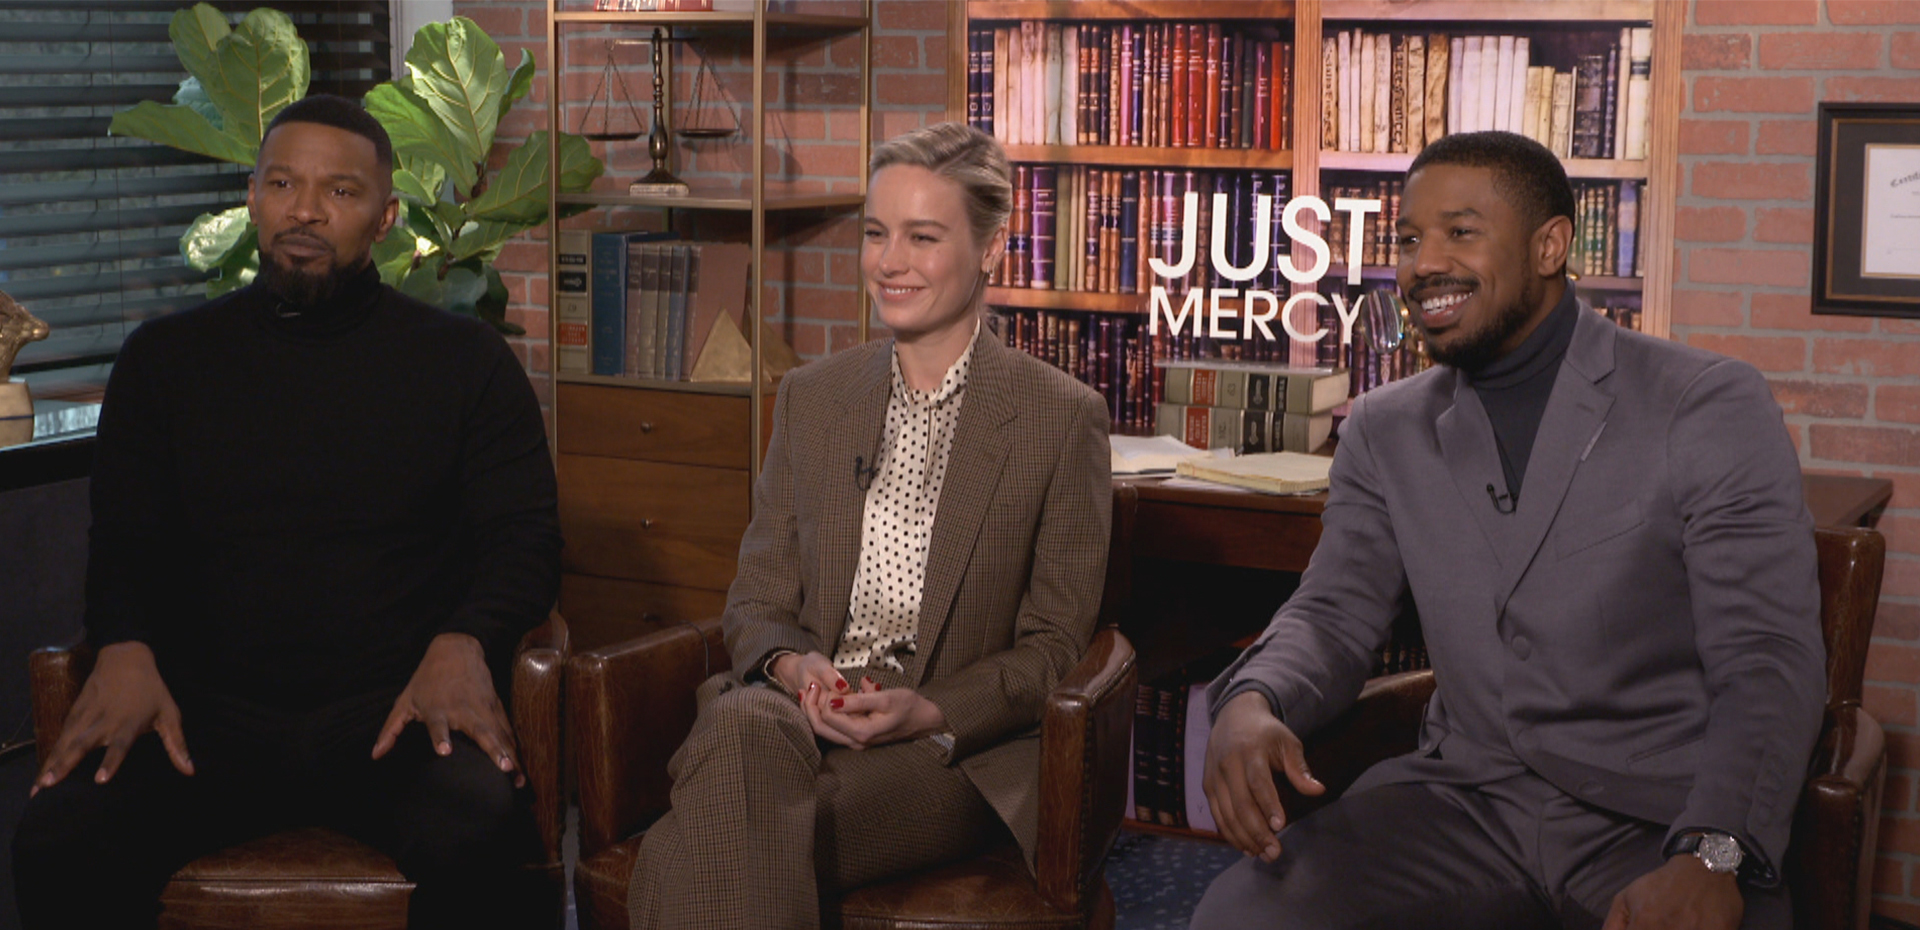 ETALK's Tyrone Edwards Sits Down with Just Mercy Cast in Canadian Exclusive Interview